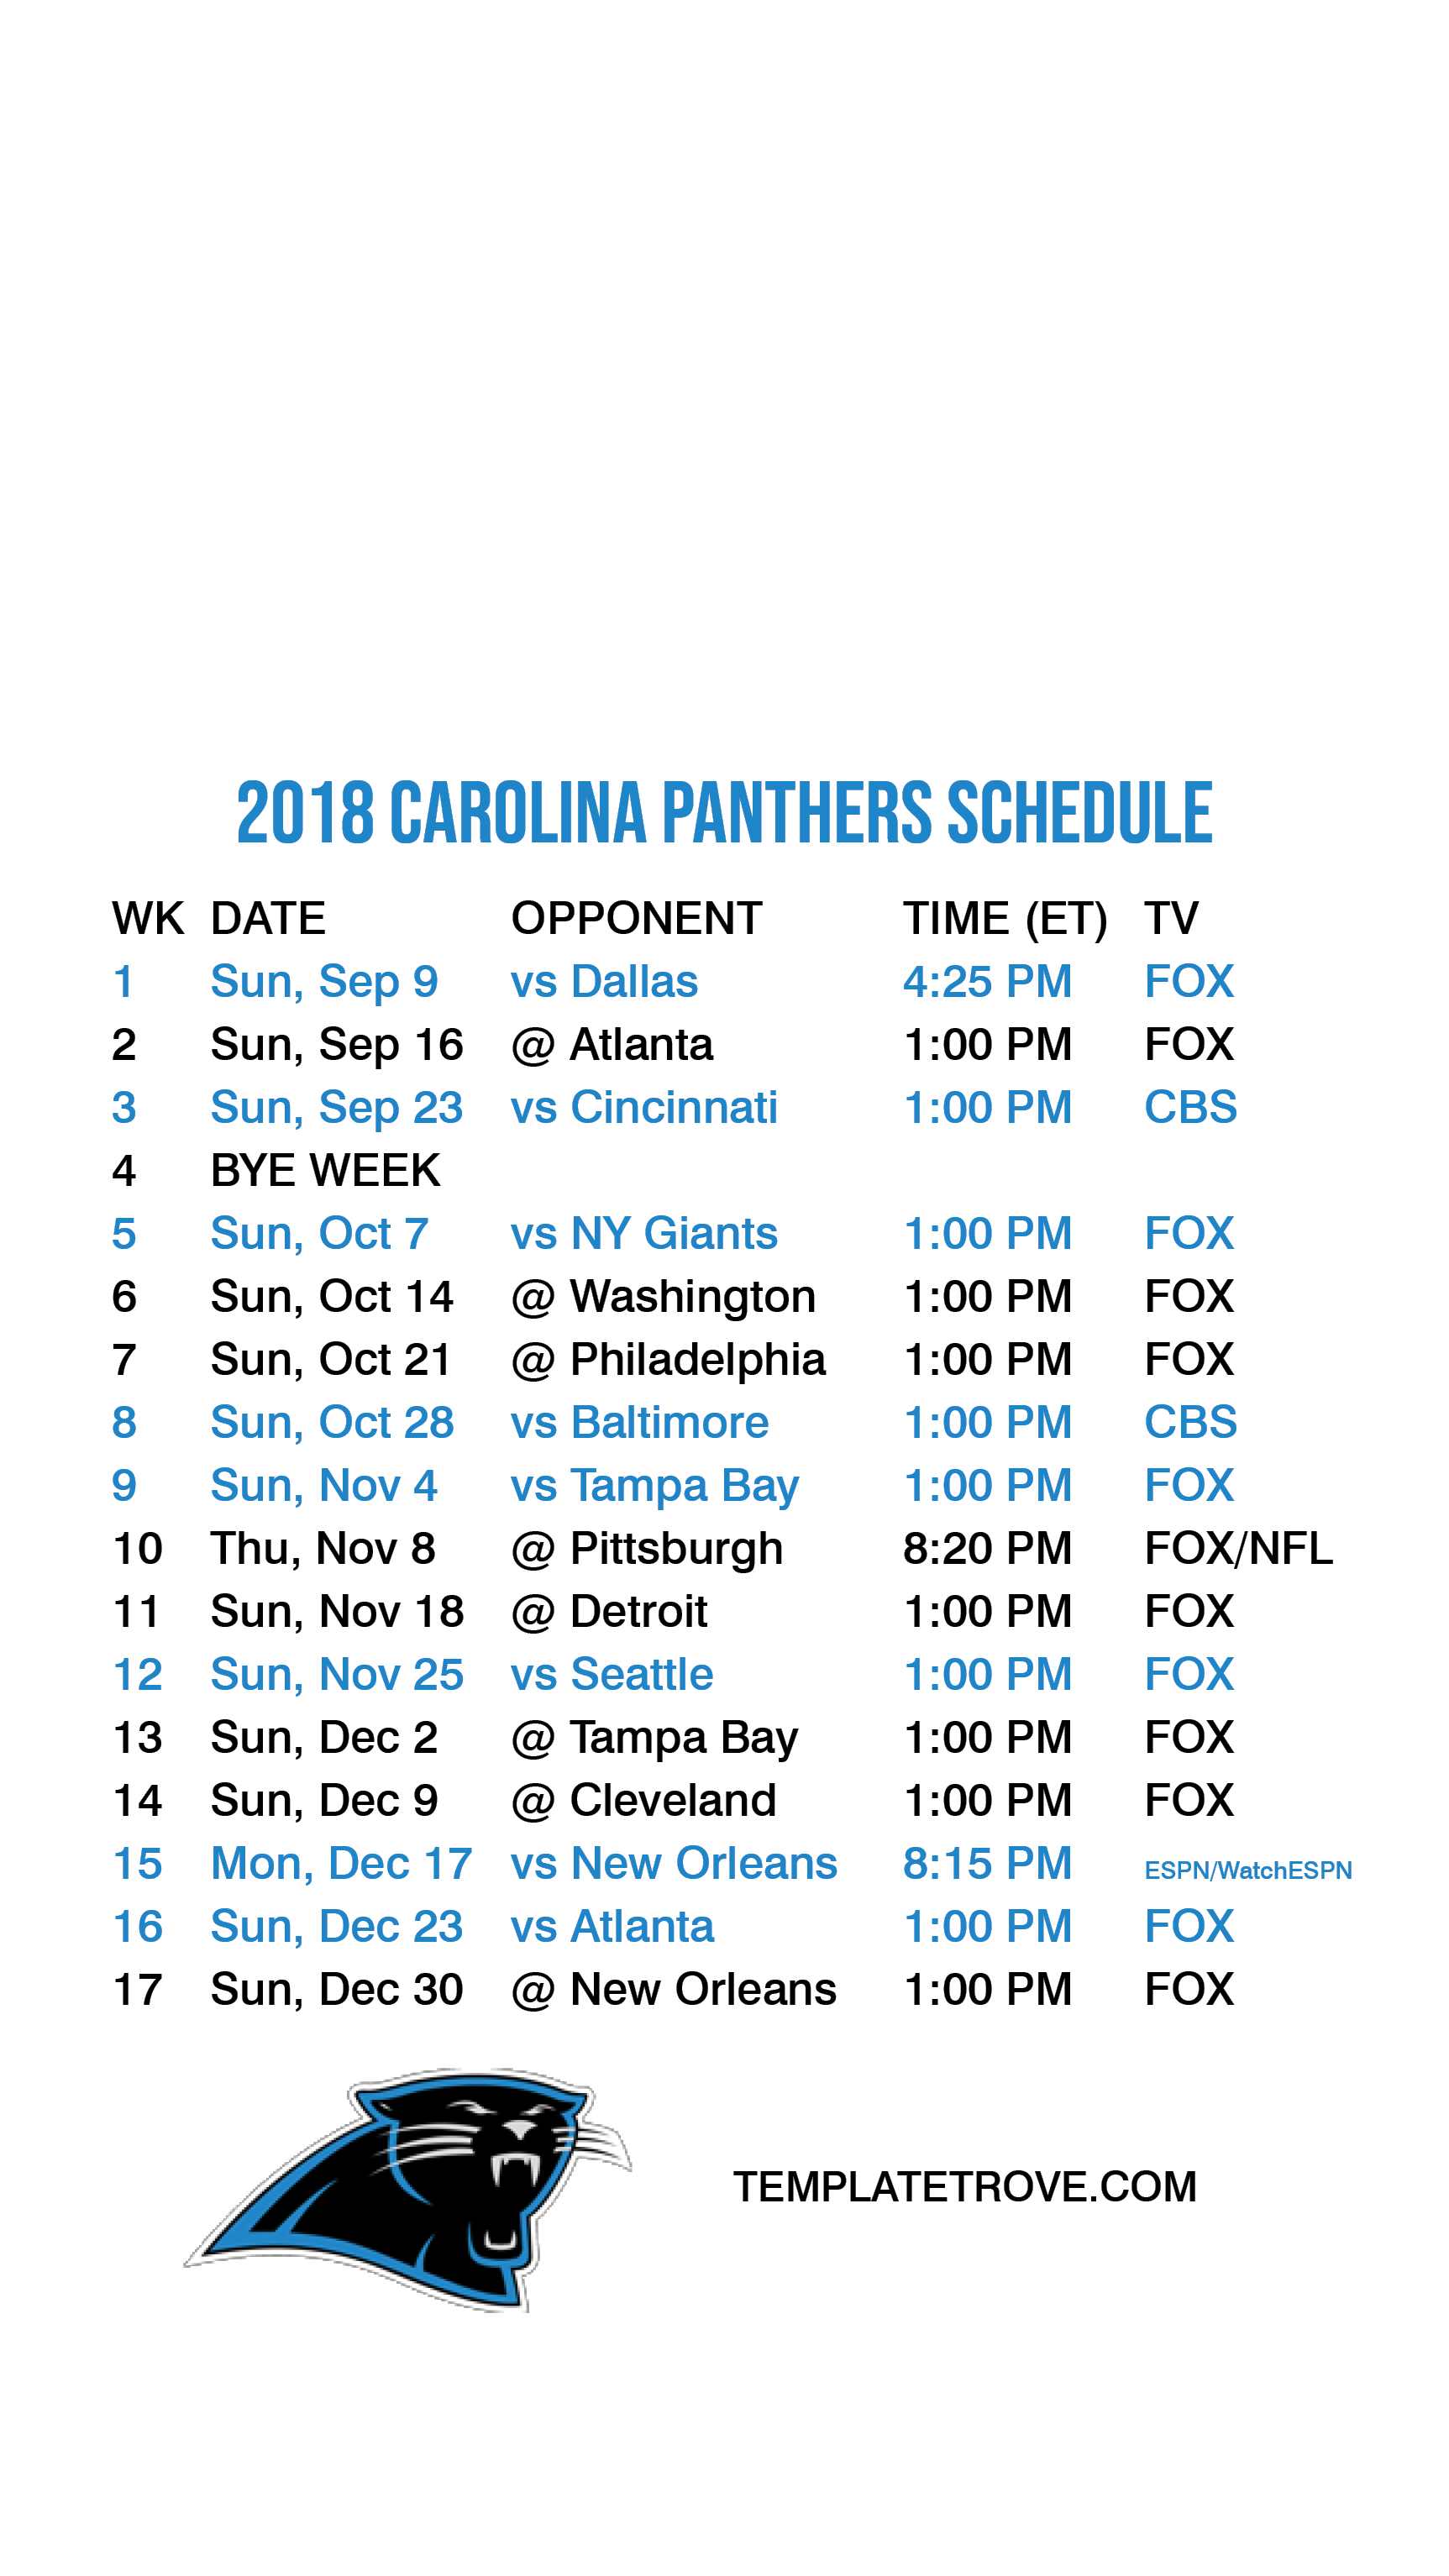 2018 2019 Carolina Panthers Lock Screen Schedule For Iphone 6 7 8 Plus